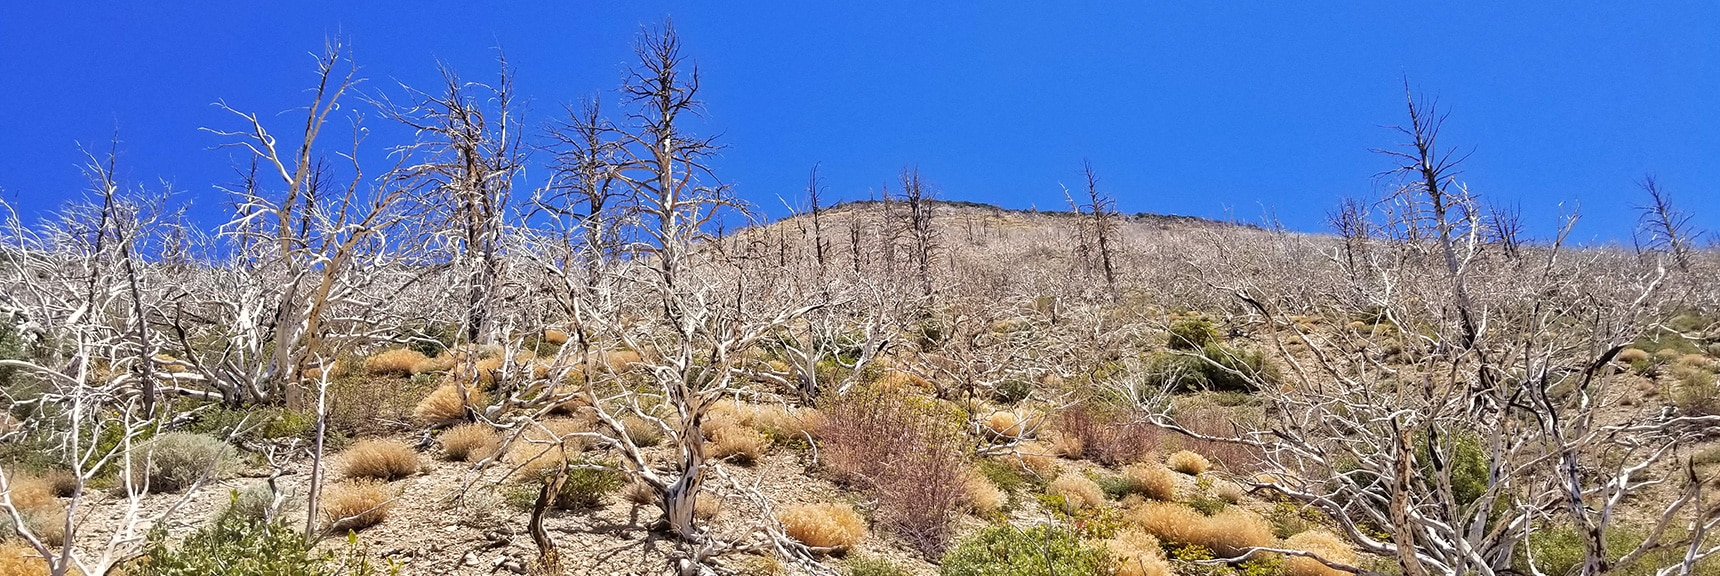 Rising to Ridge Above Wash at 8,300ft, View Toward Harris Mt. | Harris Mountain from Lovell Canyon Nevada